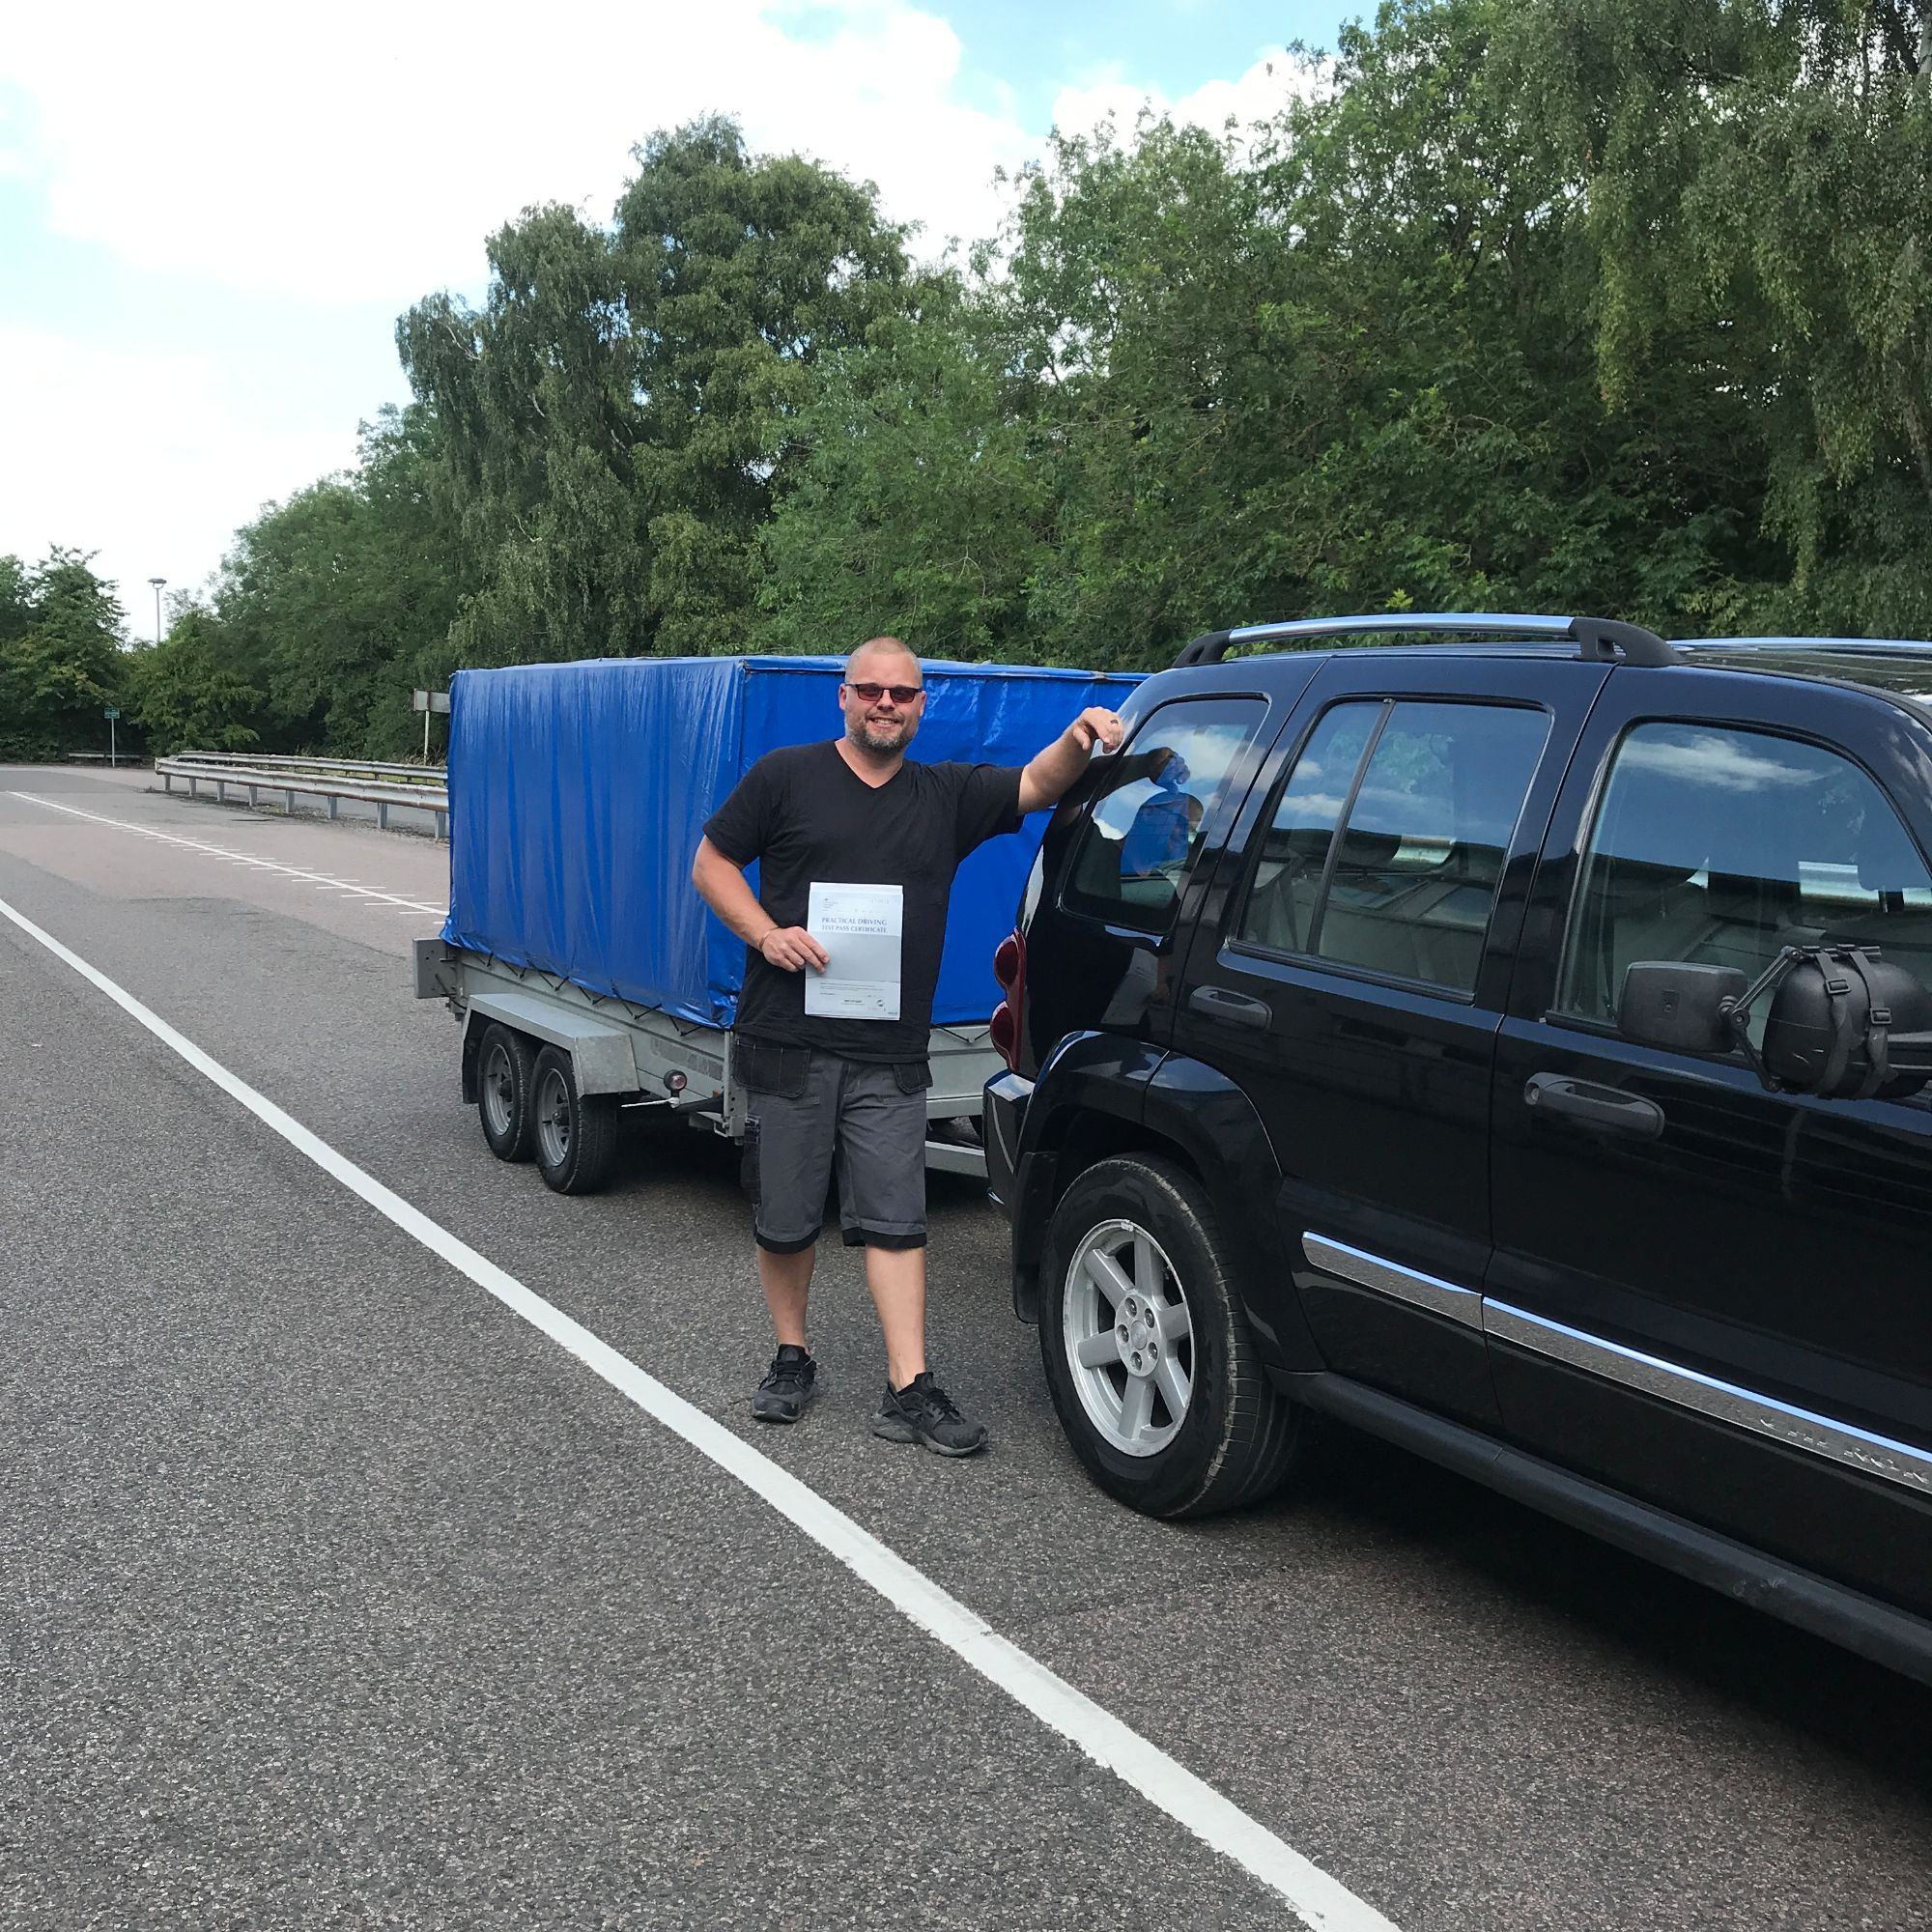 BE Trailer Towing Test Licence Courses in Gillingham, Detling, Meopham, Gravesend & Dartford Areas in Kent